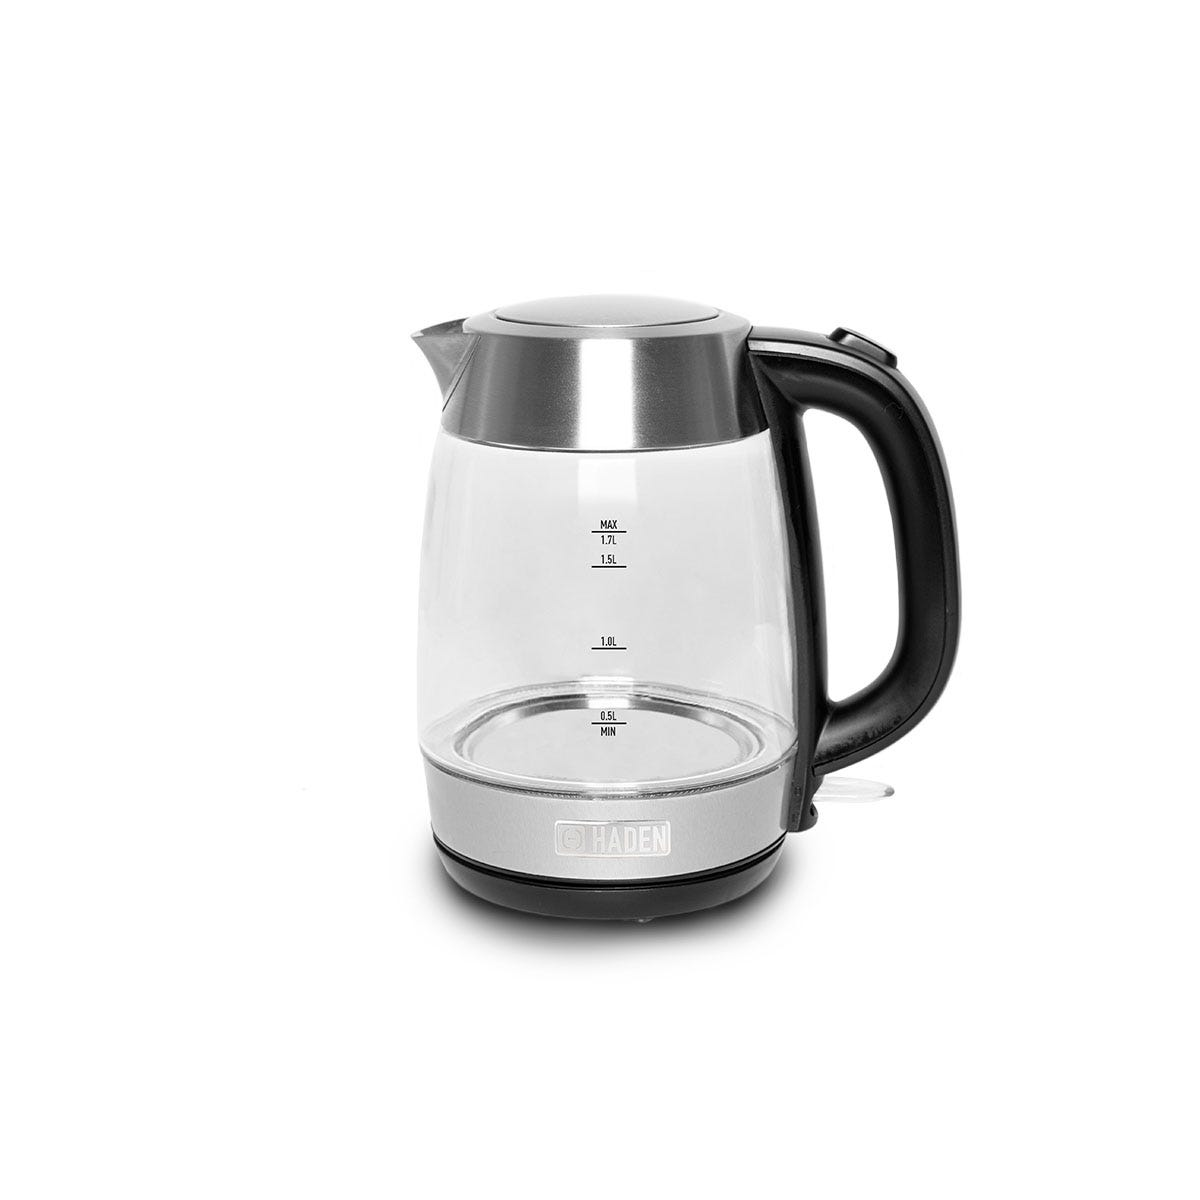 Haden 197214 Guildford 1.7L 3000W Glass Kettle - Clear